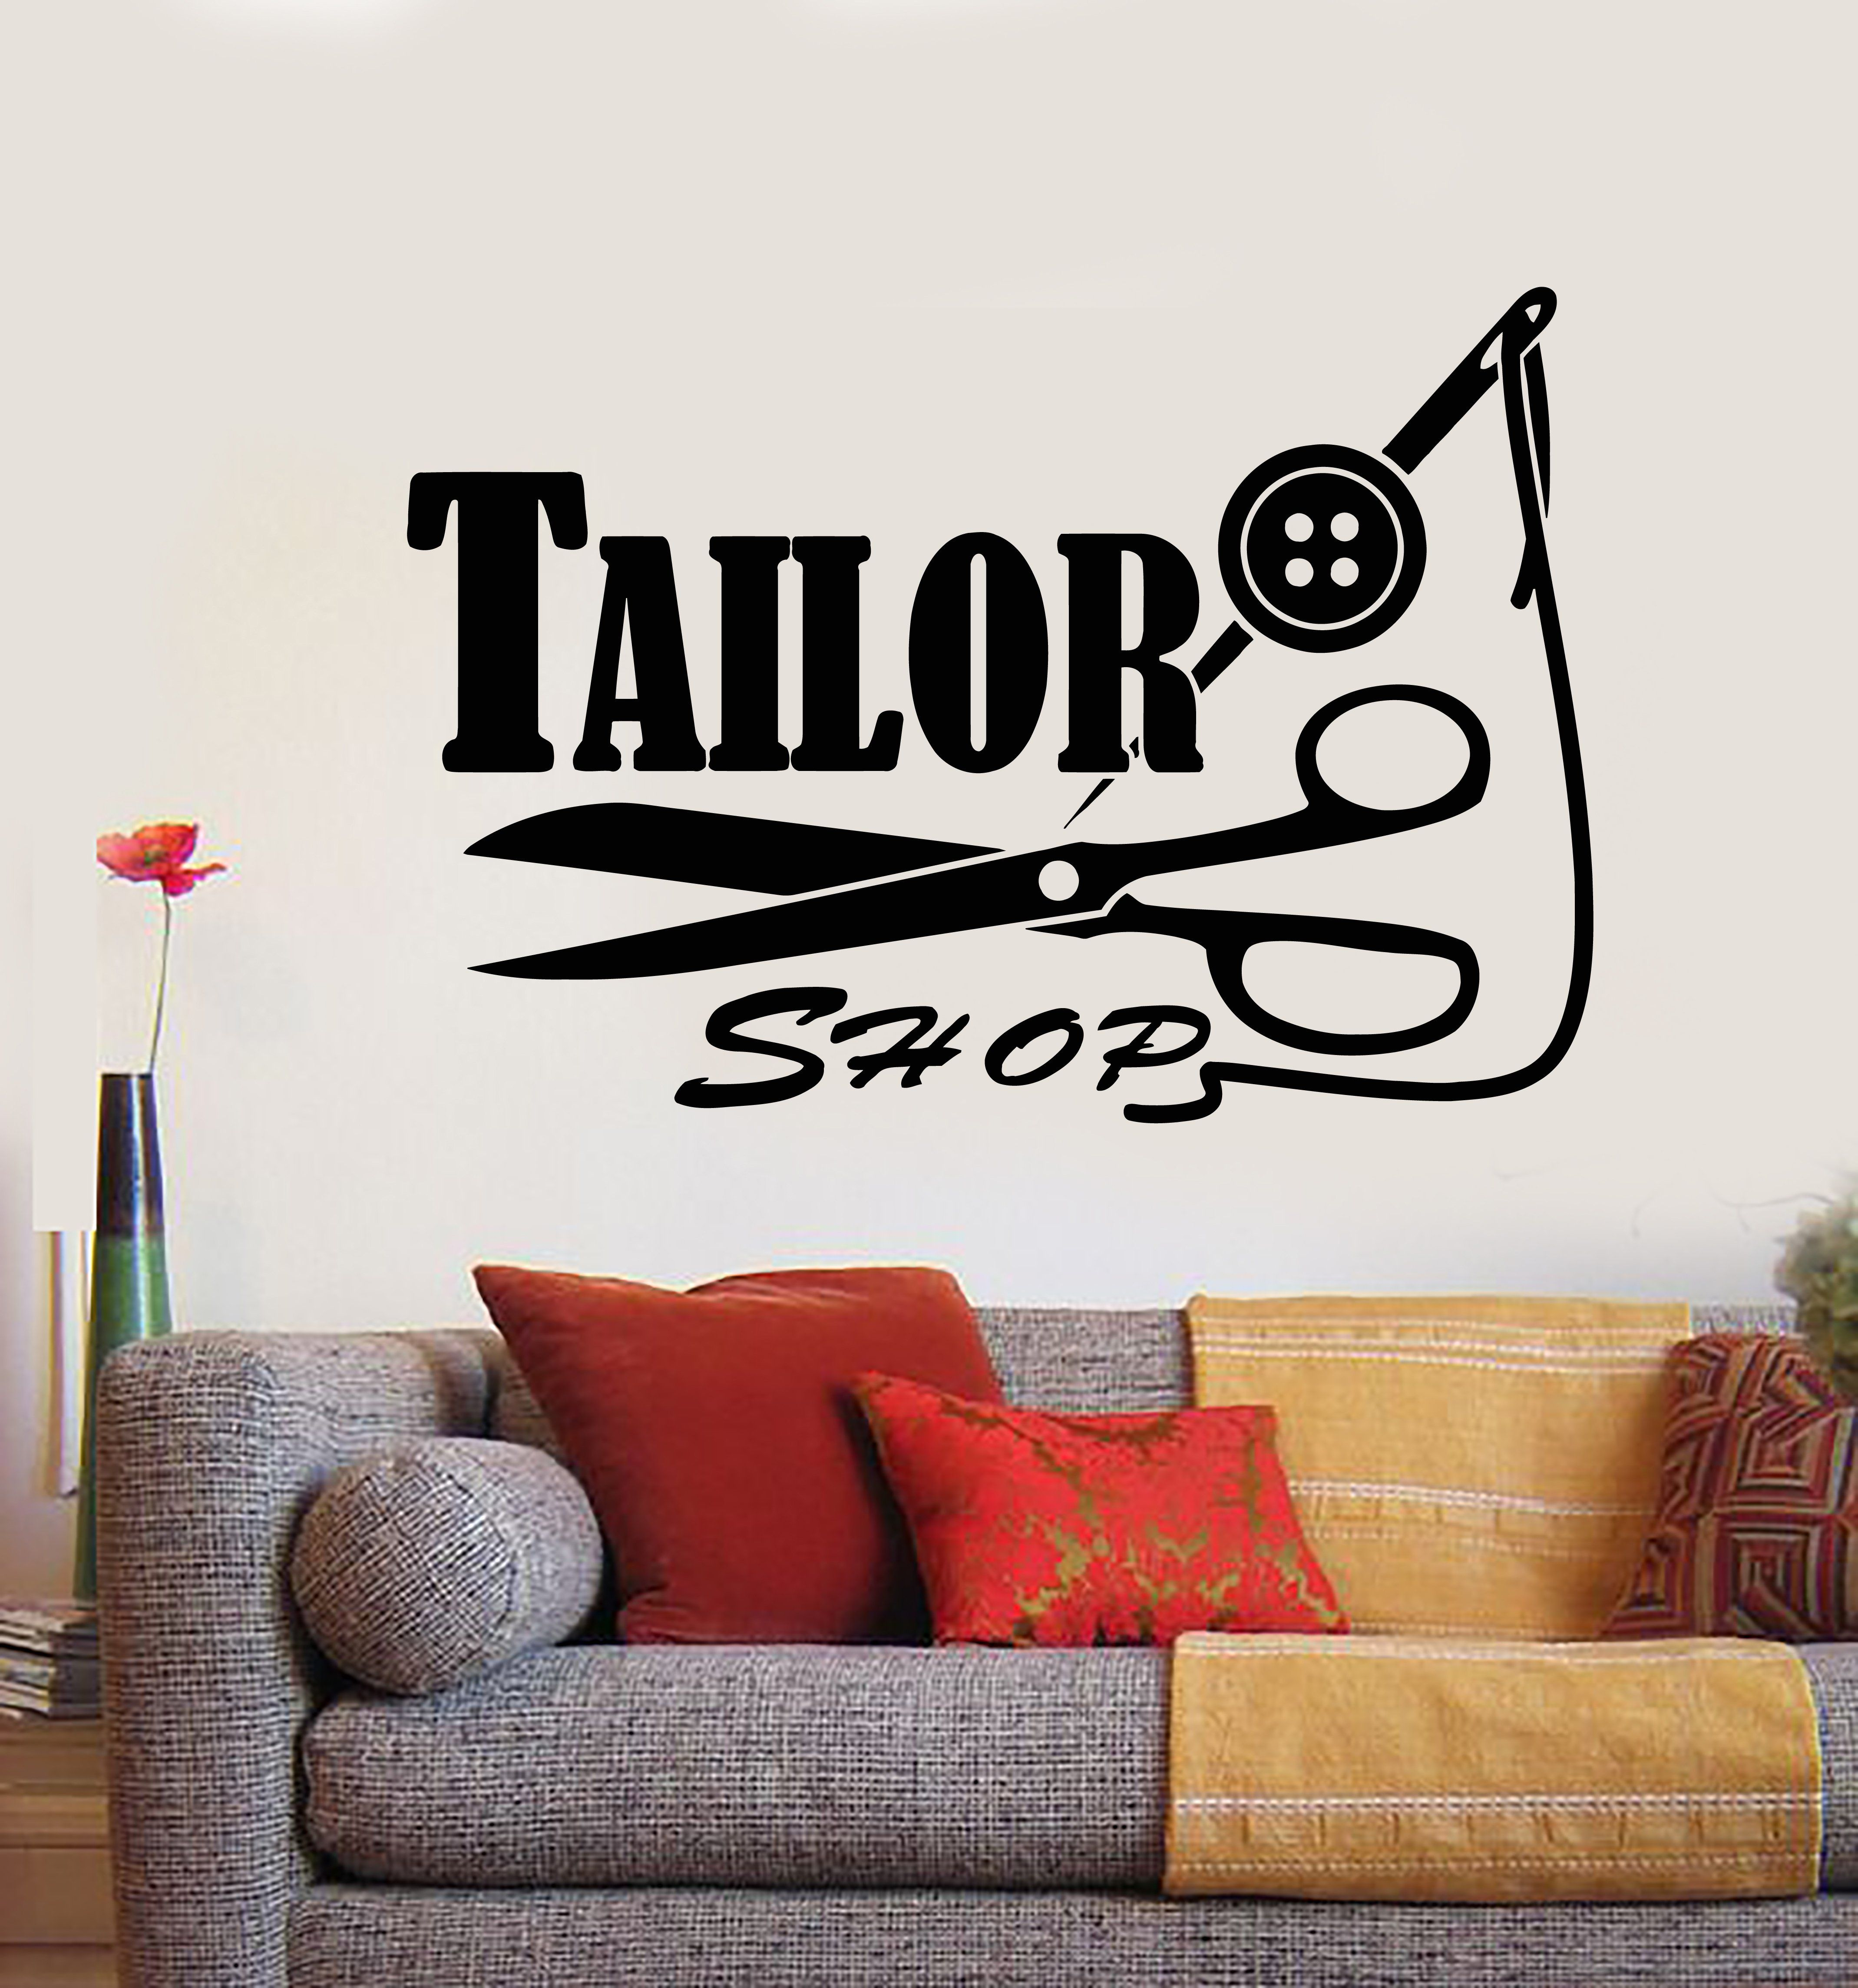 Vinyl wall decal seamstress tailor shop logo threads needle scissors stickers 2225ig